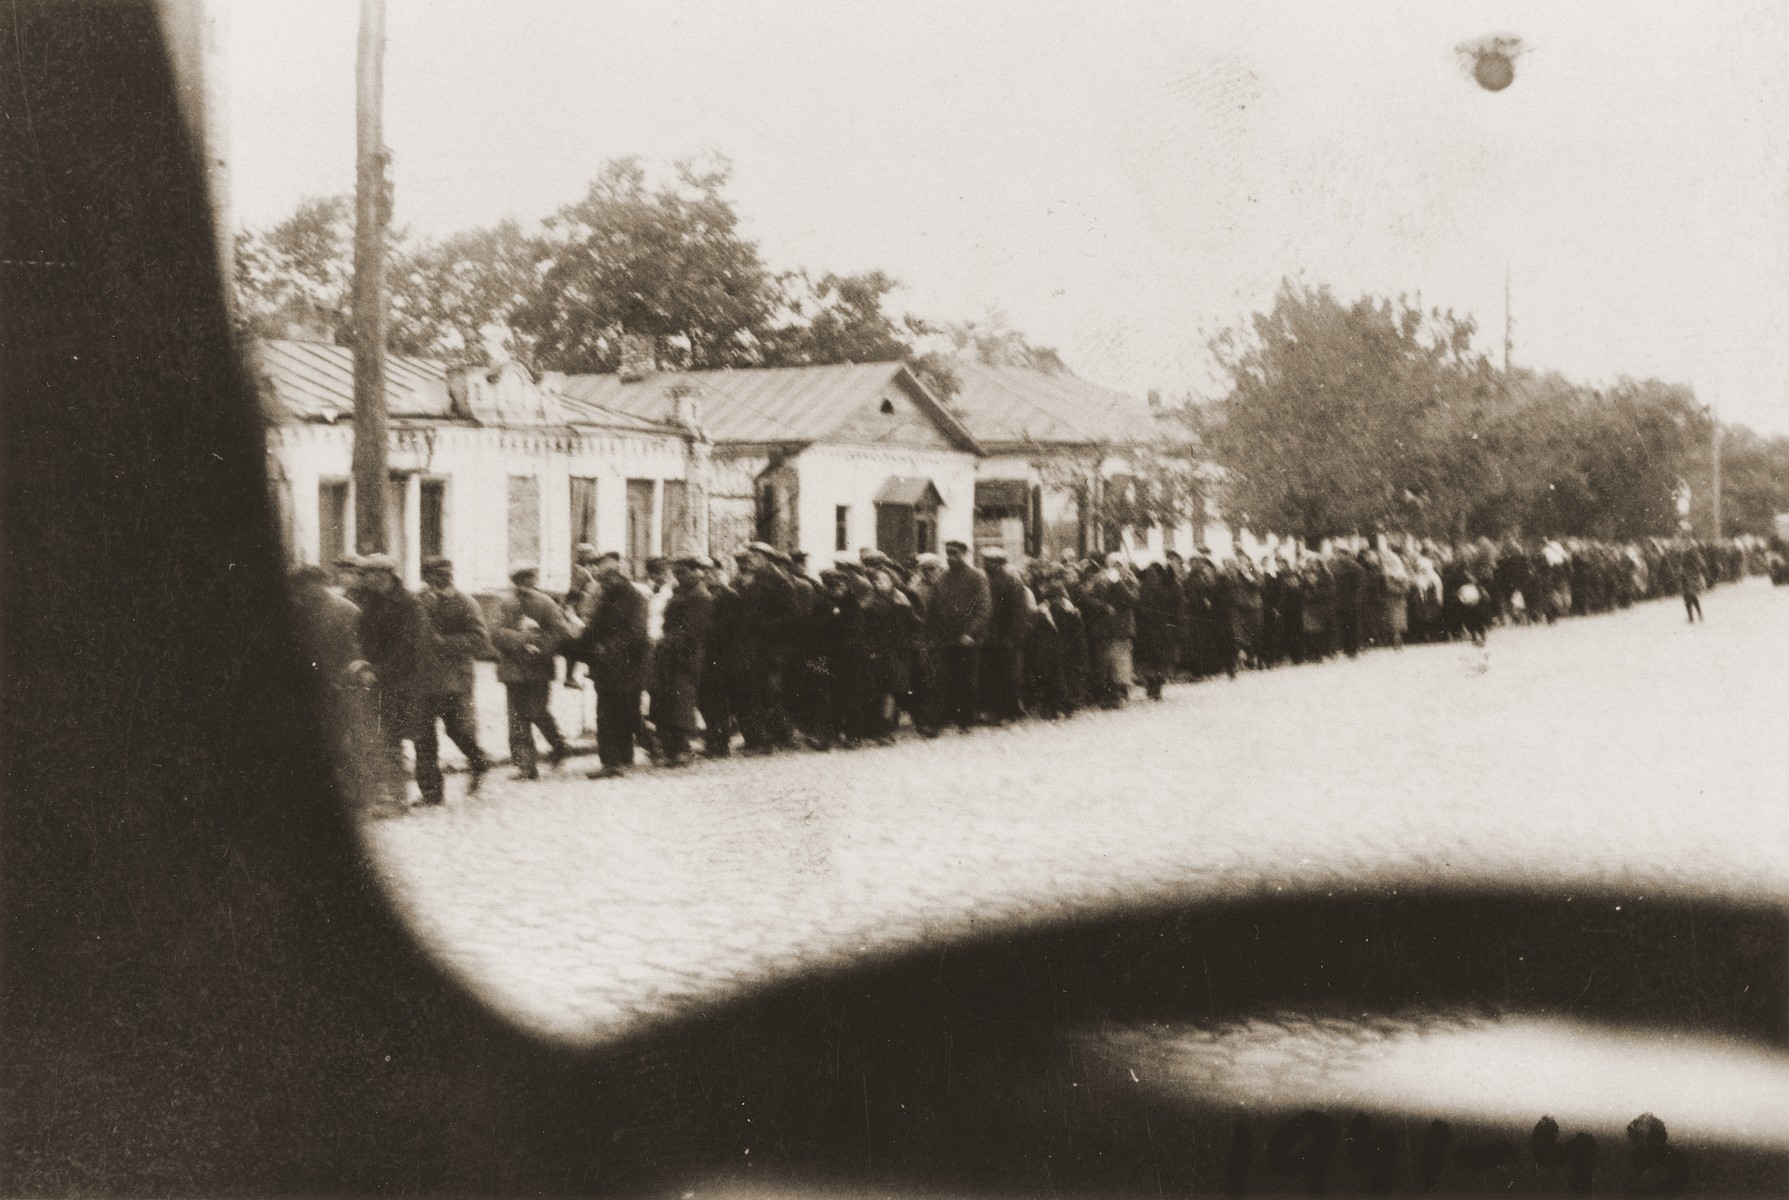 Jewish deportees under German guard march through the streets of Kamenets-Podolsk to an execution site outside of the city.